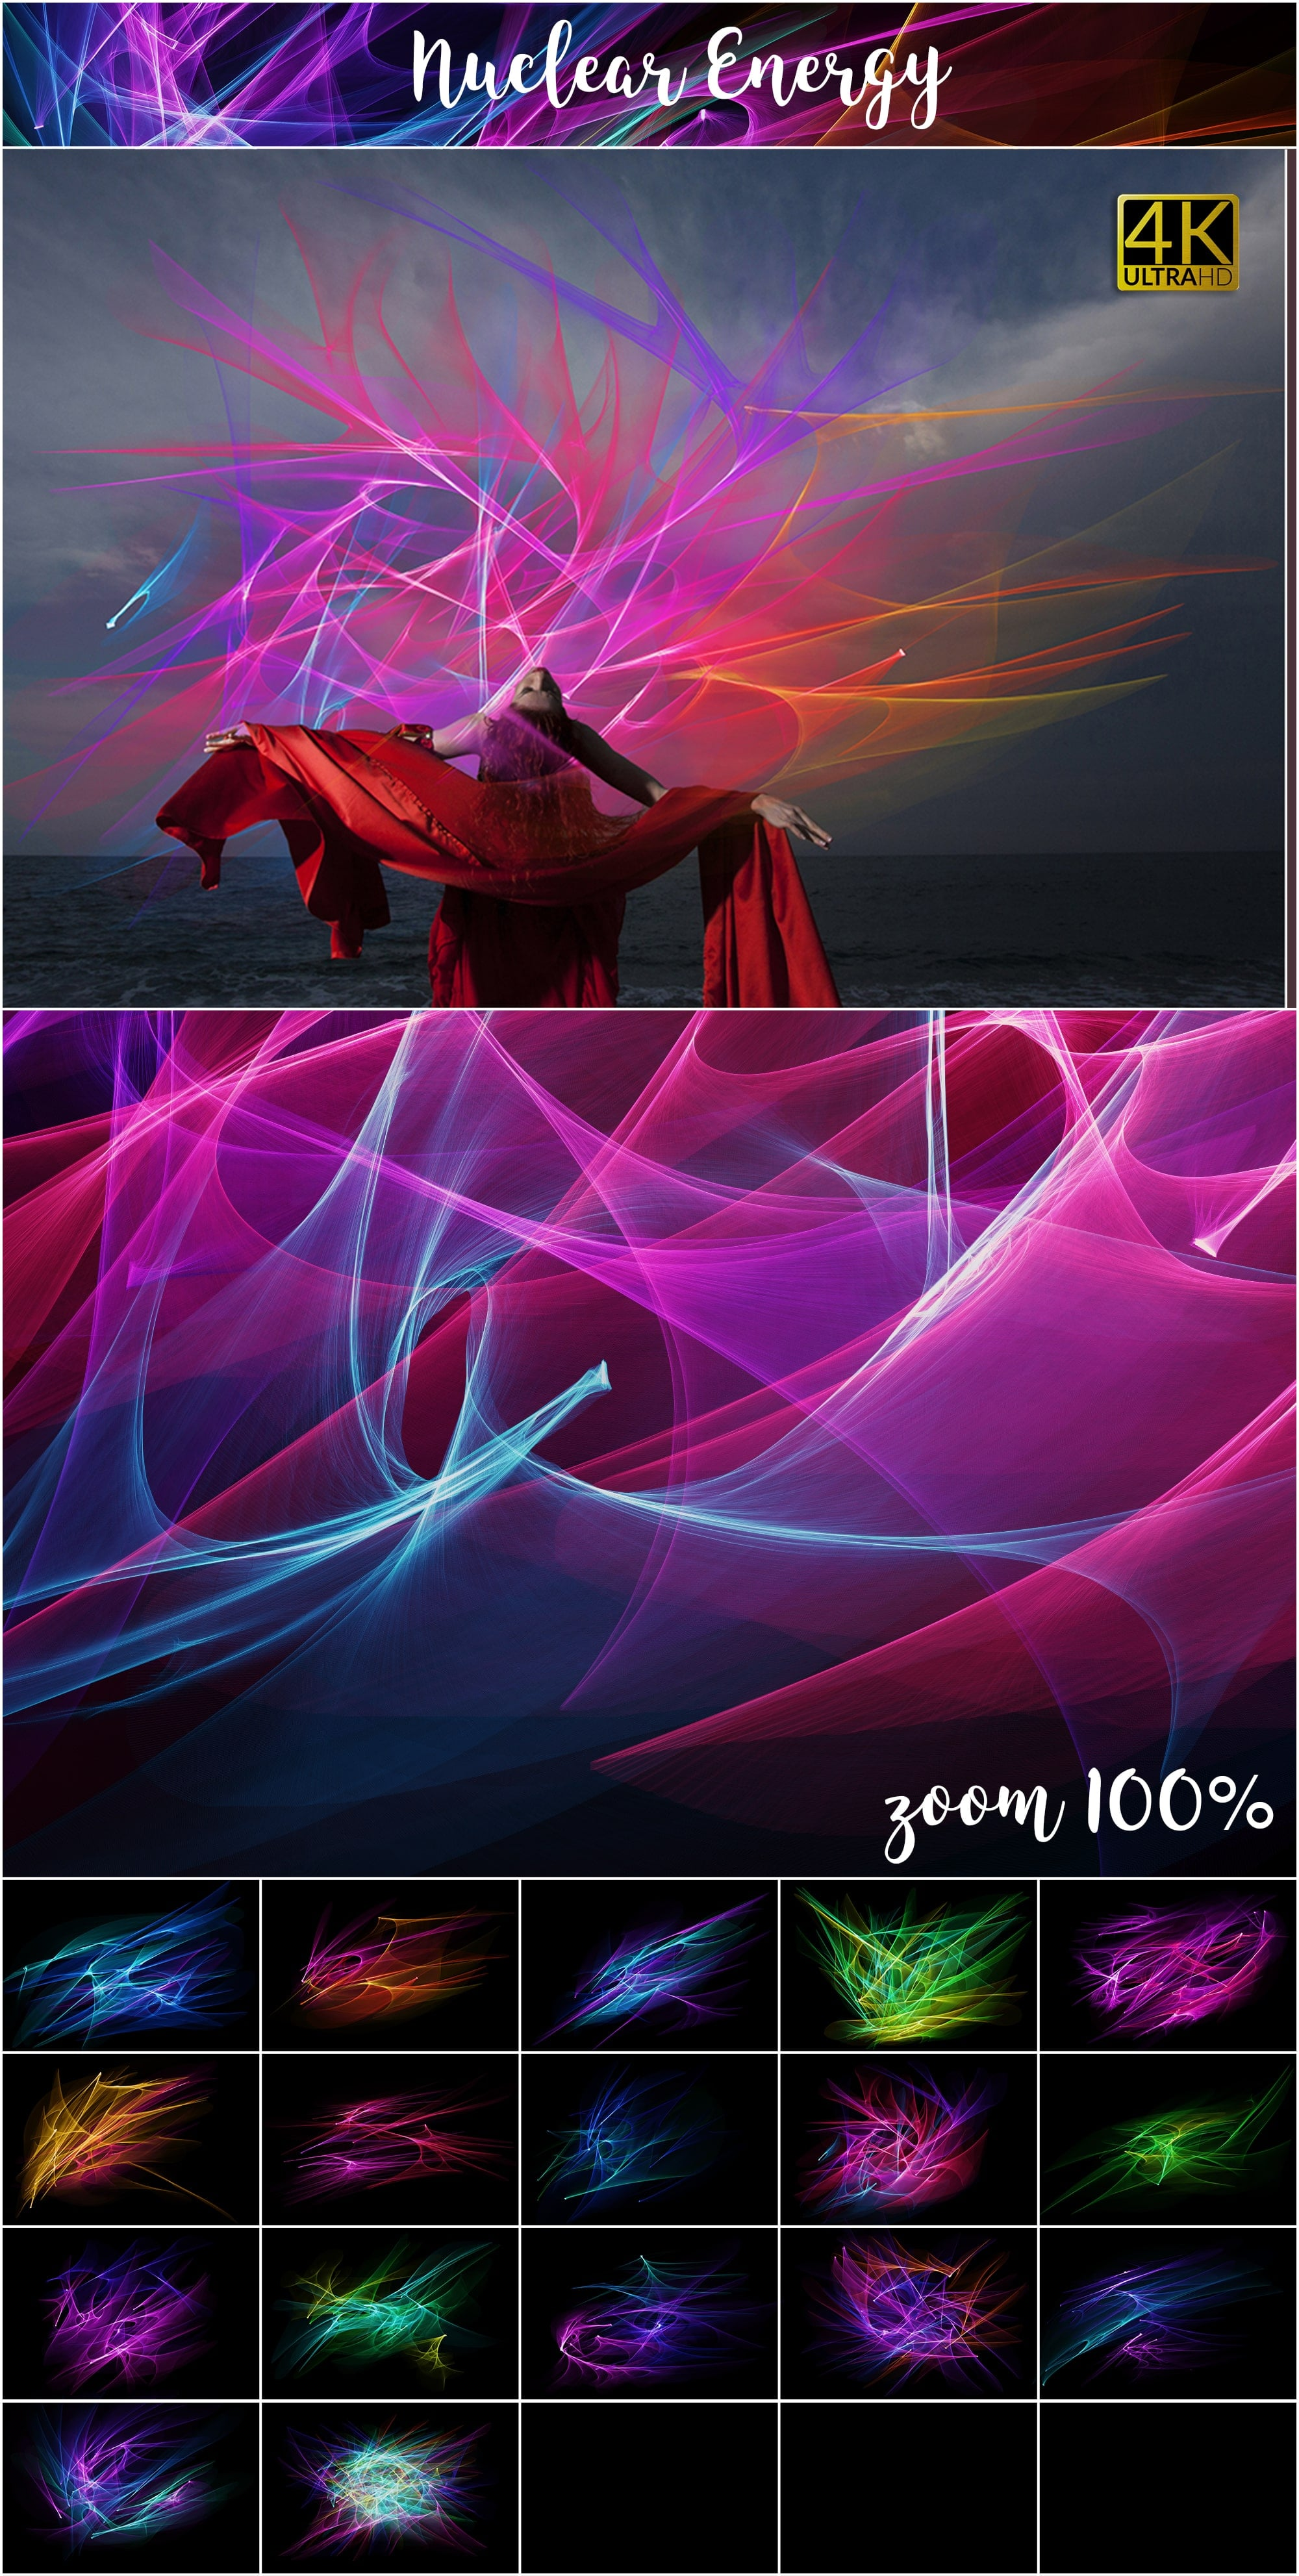 Over 11 400 Aesthetic Overlays Bundle SPECIAL OFF 98% - 24 Nuclear Energy min